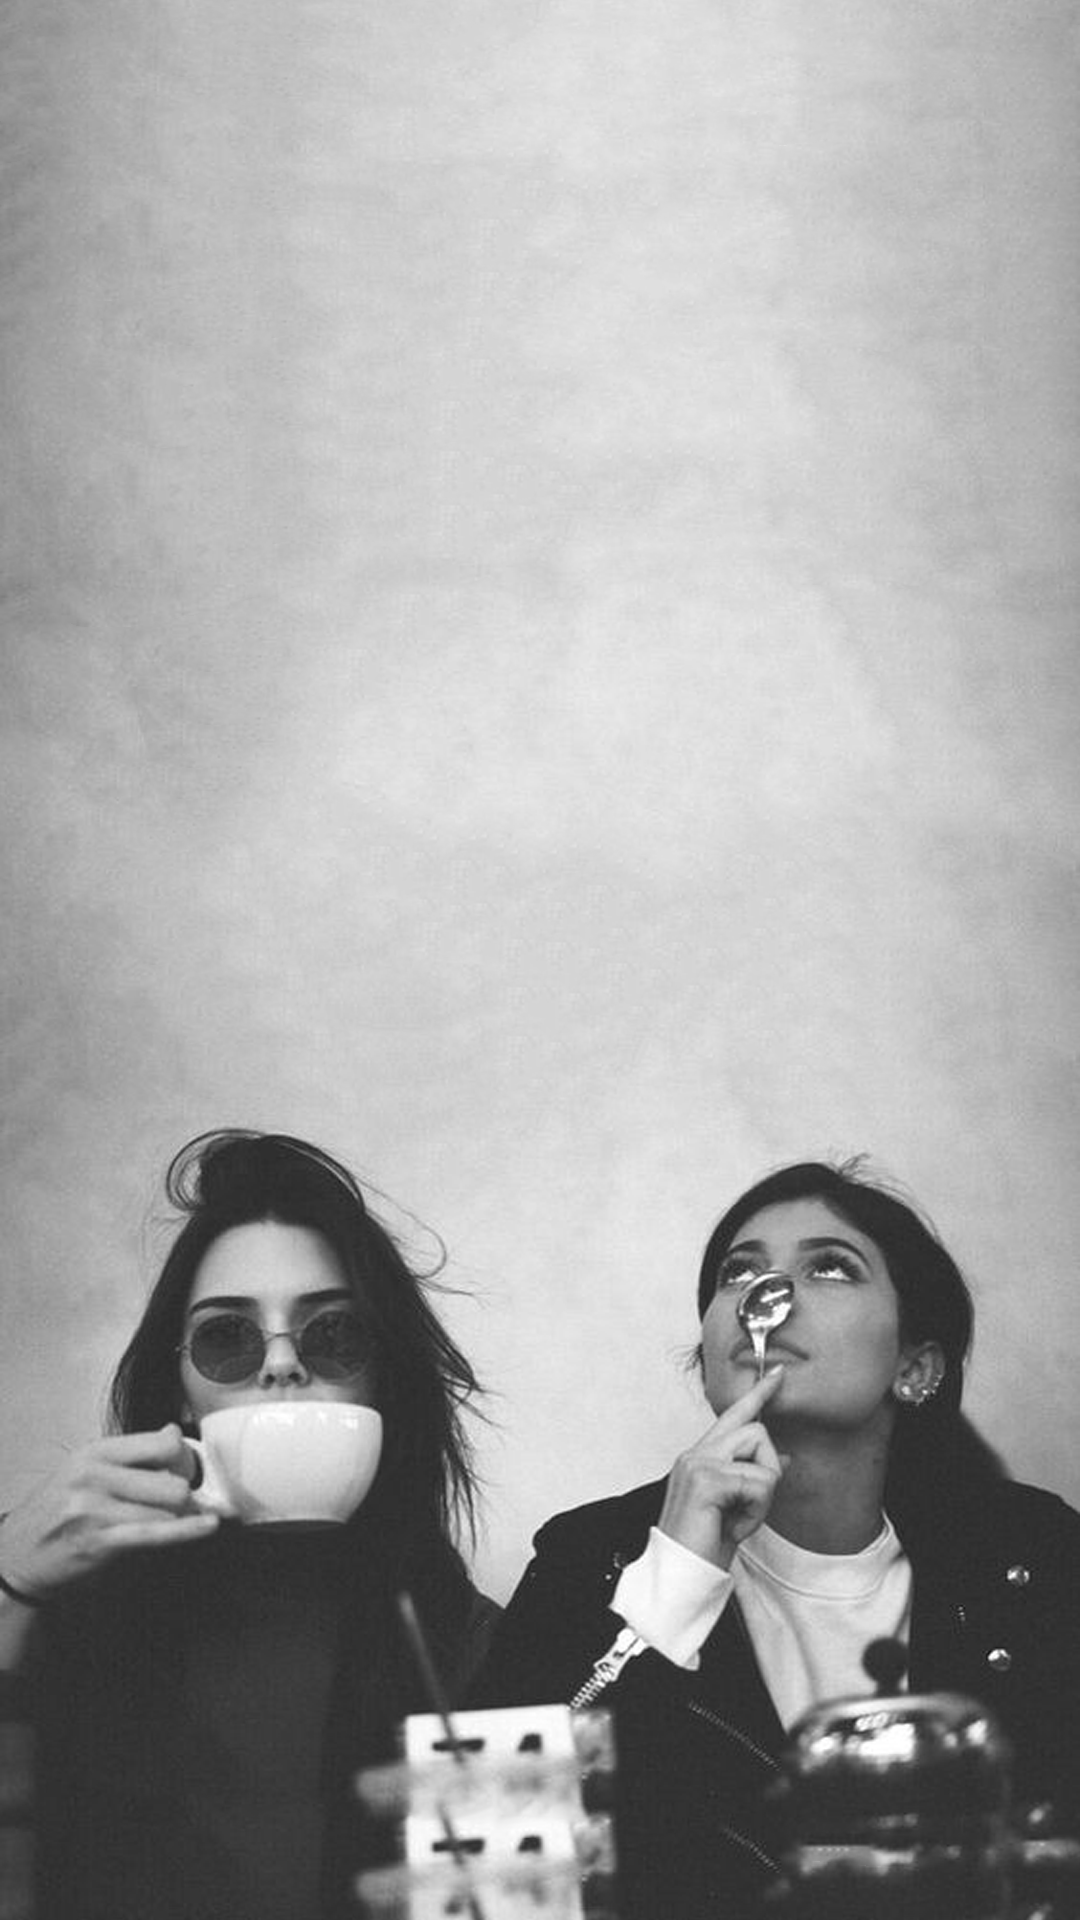 Kylie Jenner Background Picture In 2020 Kendall Jenner Wallpaper Friend Photoshoot Black And White Aesthetic